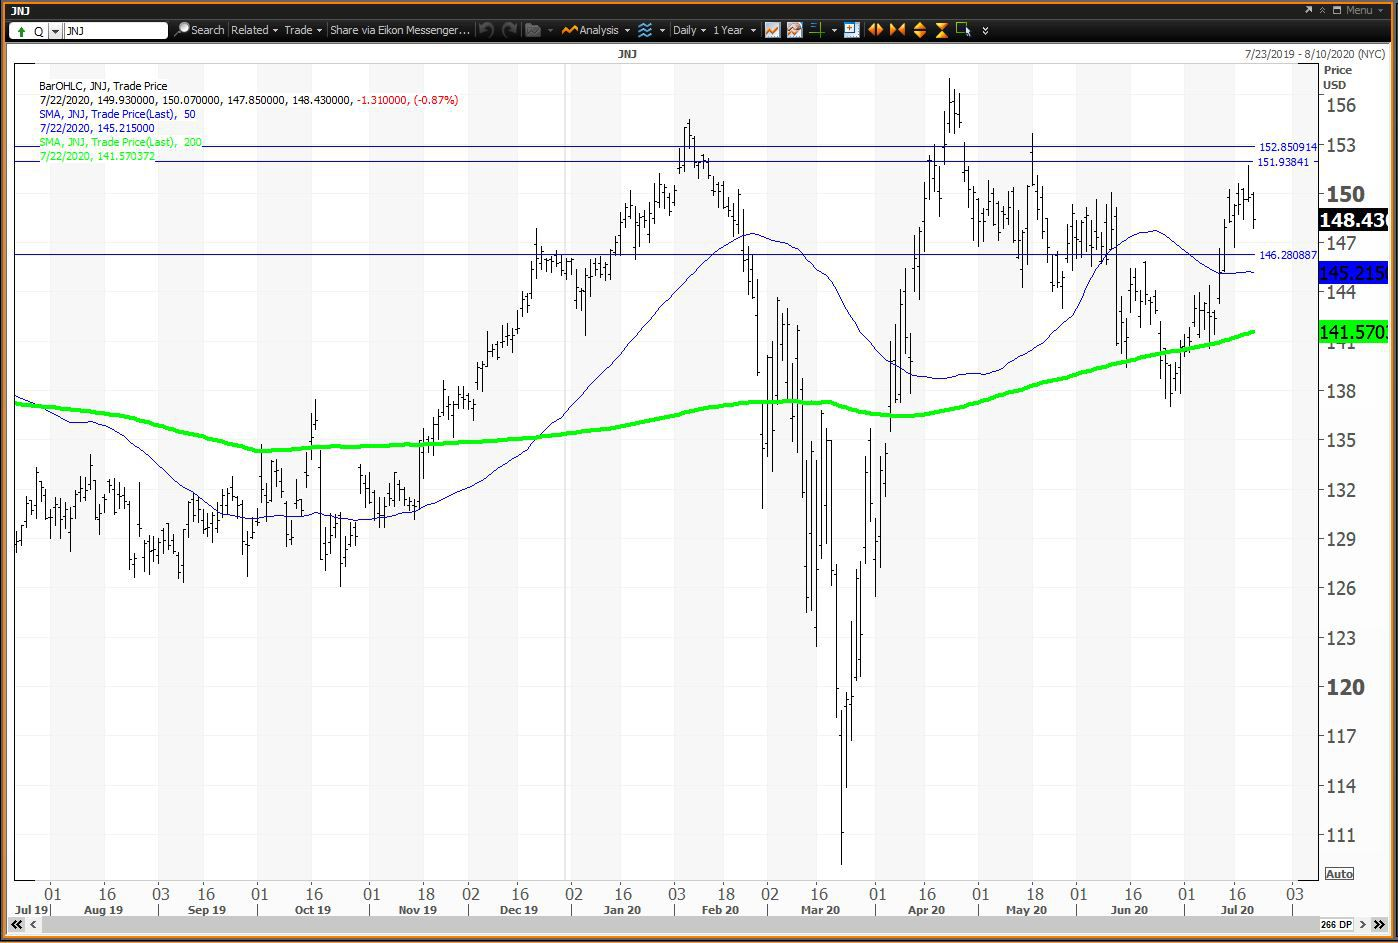 Daily chart showing the share price performance of Johnson & Johnson (JNJ)